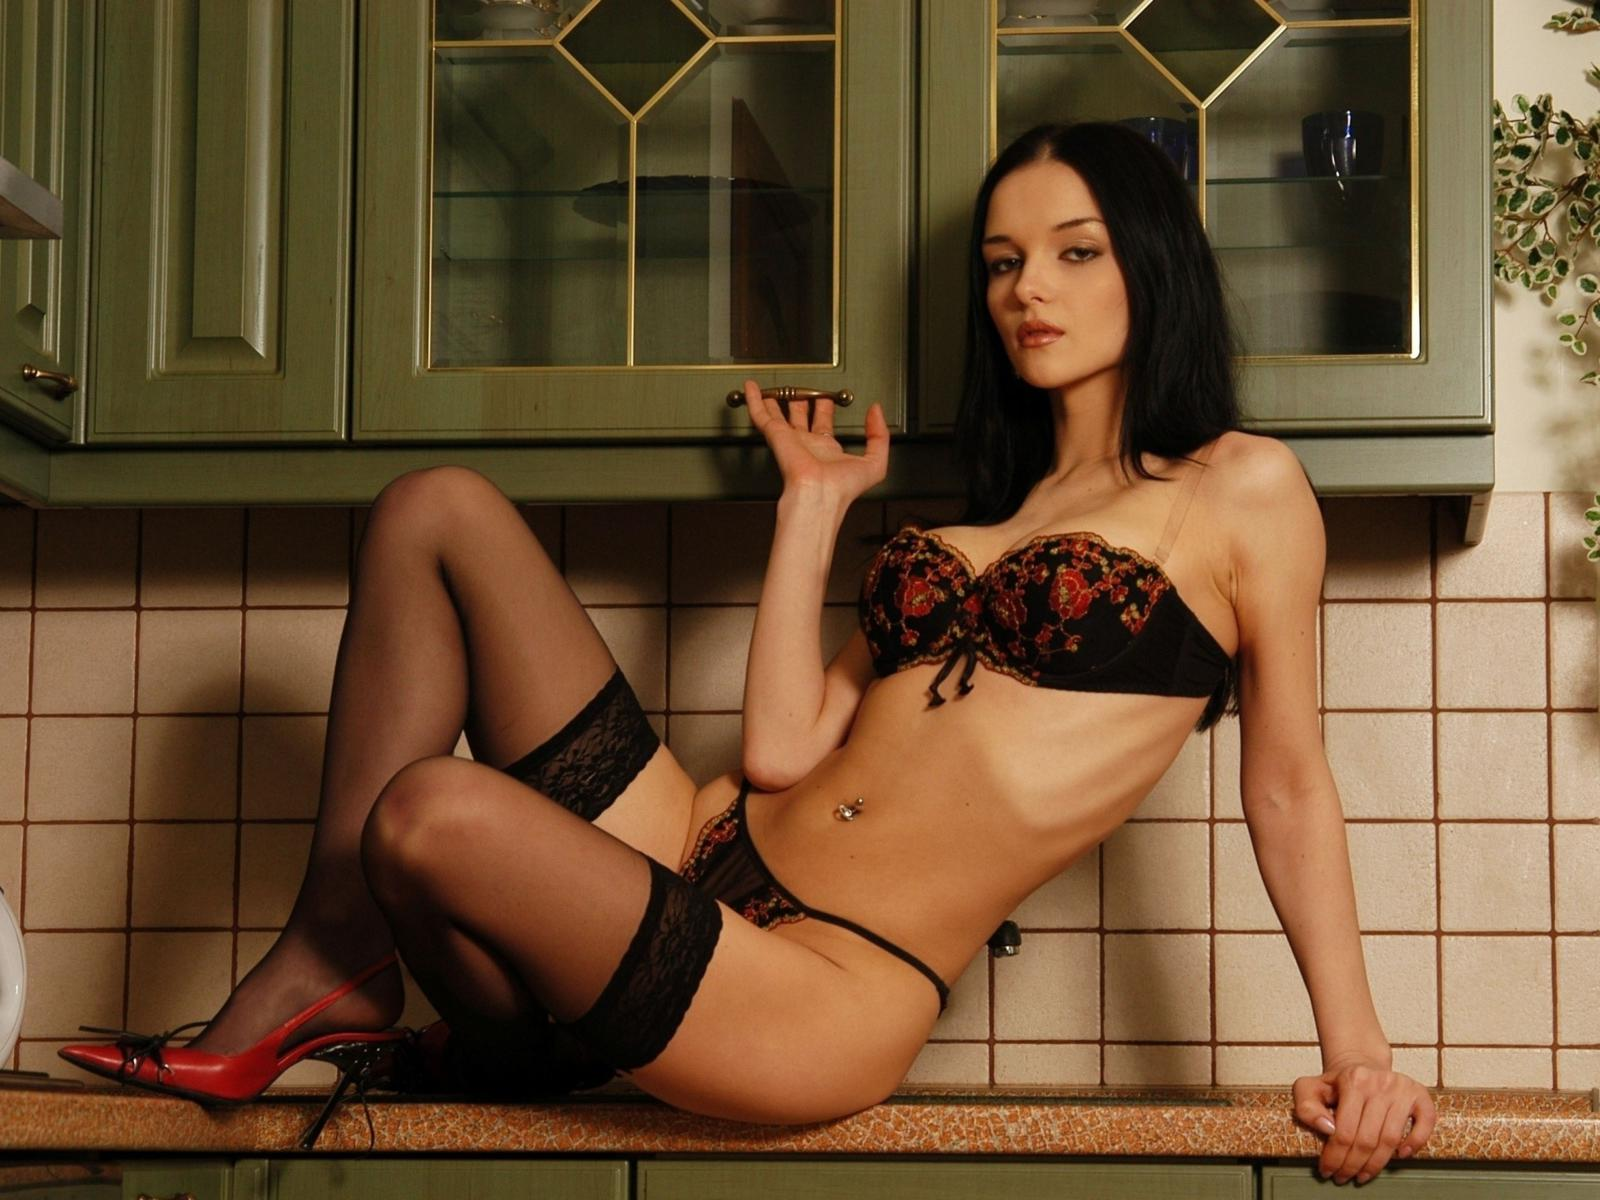 brunette, kitchen, lingerie, stockings, katie fey, eugenia diordiychuk, jenya d, heels, yevgeniya diordiychuk, playboy, playmate of the year, high heels, sexy